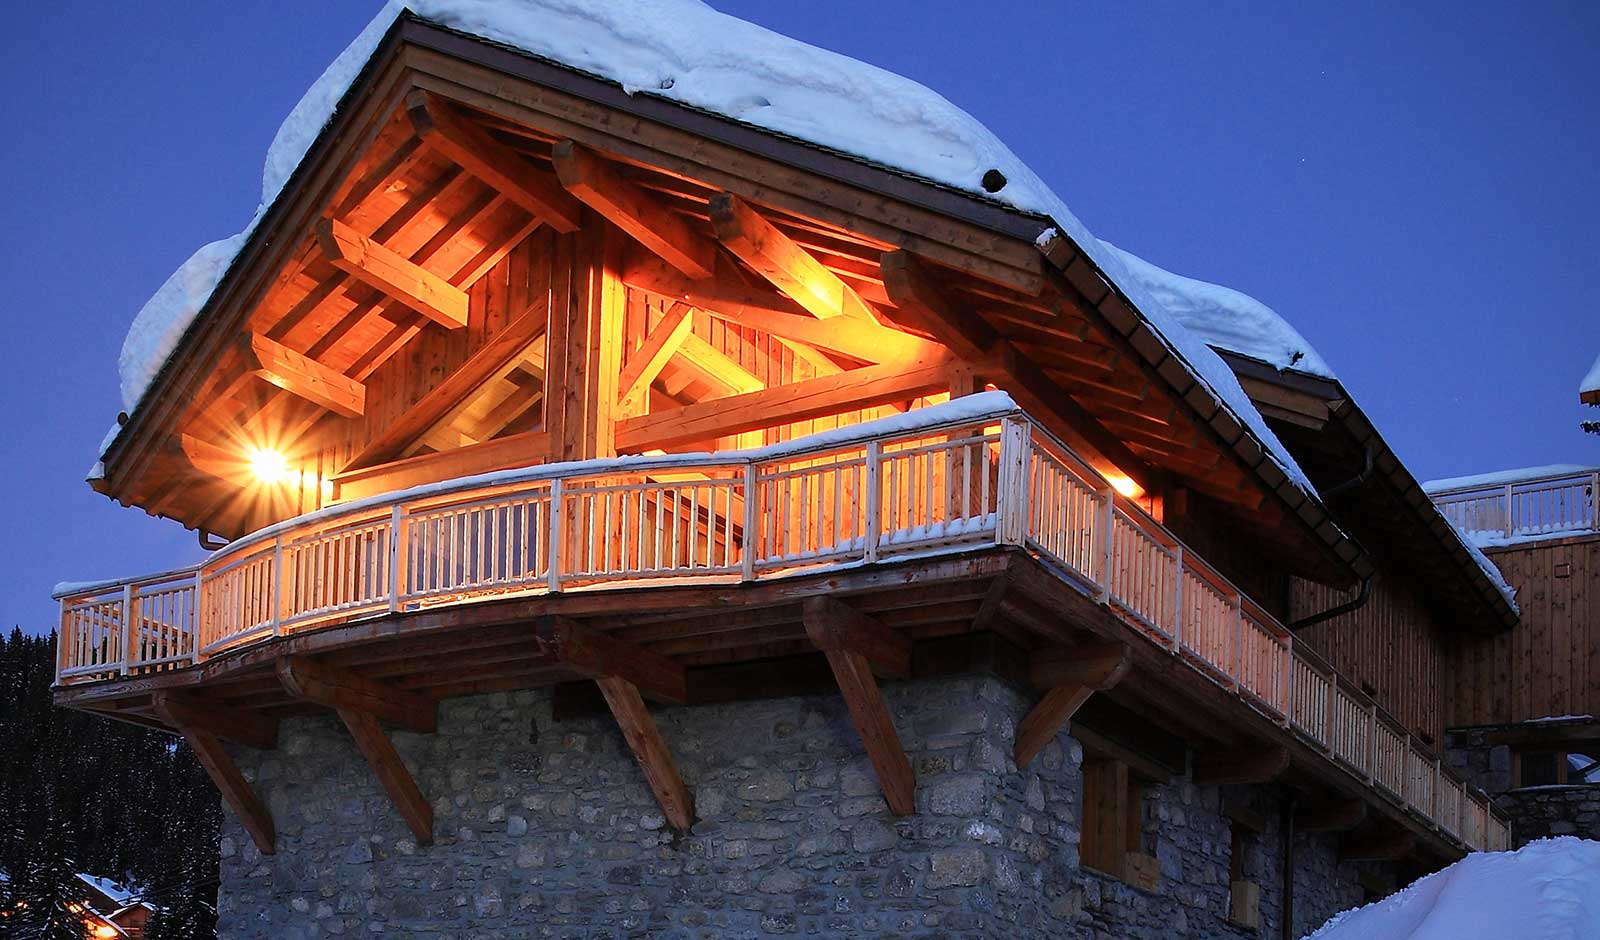 hotel-adray-telebar-14-atelier-crea-and-co-architecte-design-project-manager-meribel-savoie